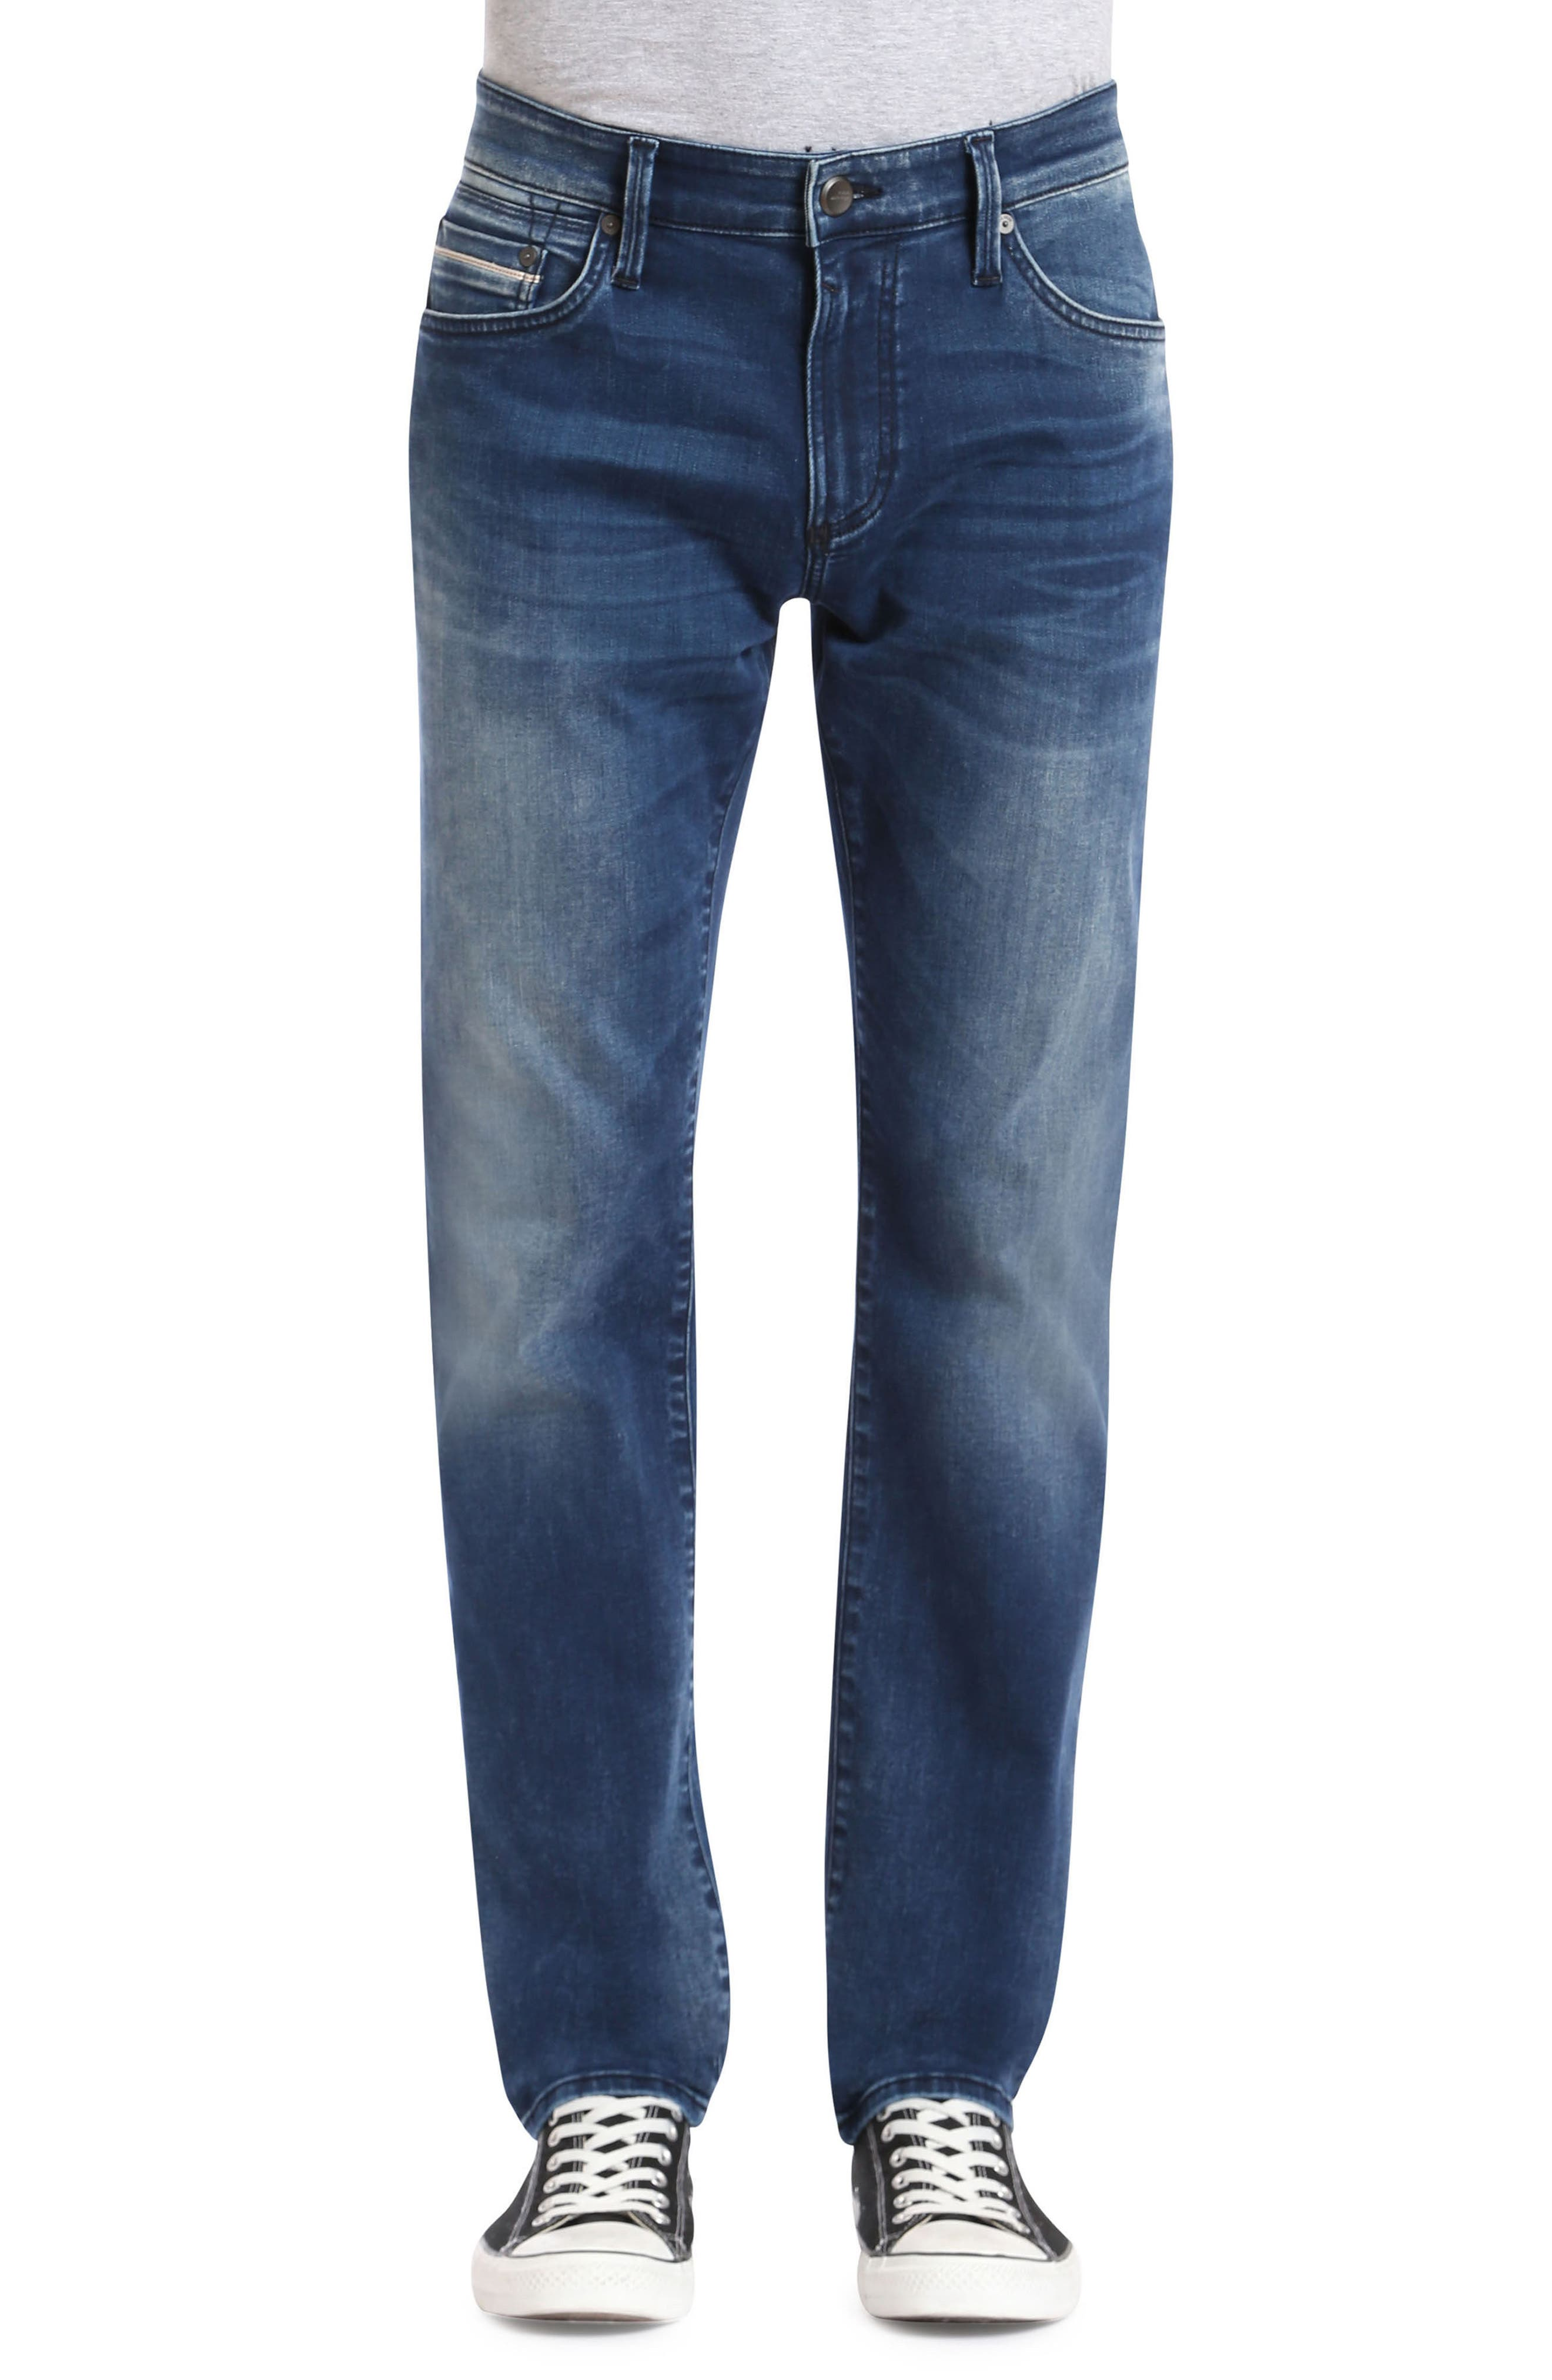 Marcus Slim Straight Leg Jeans,                             Main thumbnail 1, color,                             Forest Blue White Edge